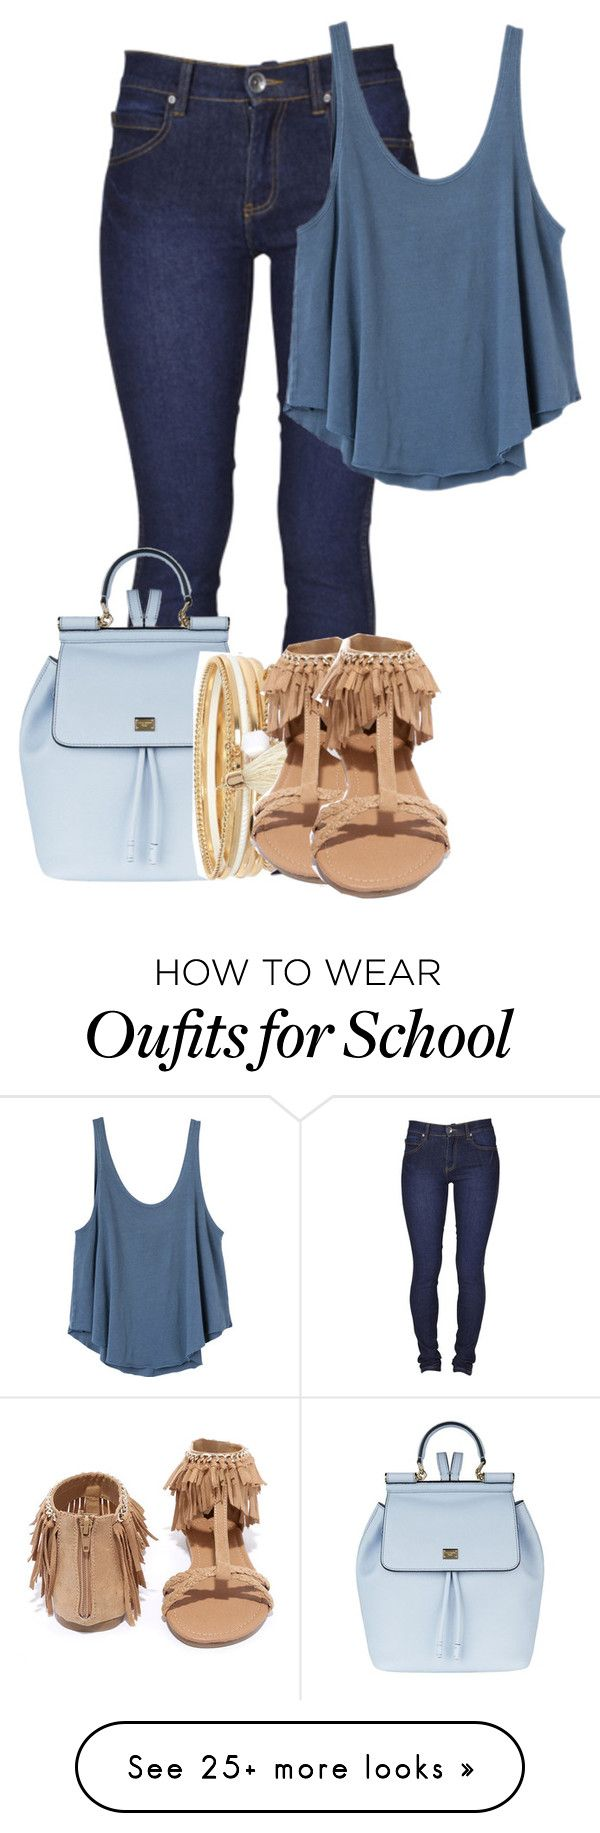 """""""Back To School - 16"""" by brechris on Polyvore featuring Dr. Denim, RVCA, Dolce&Gabbana, River Island and Qupid"""